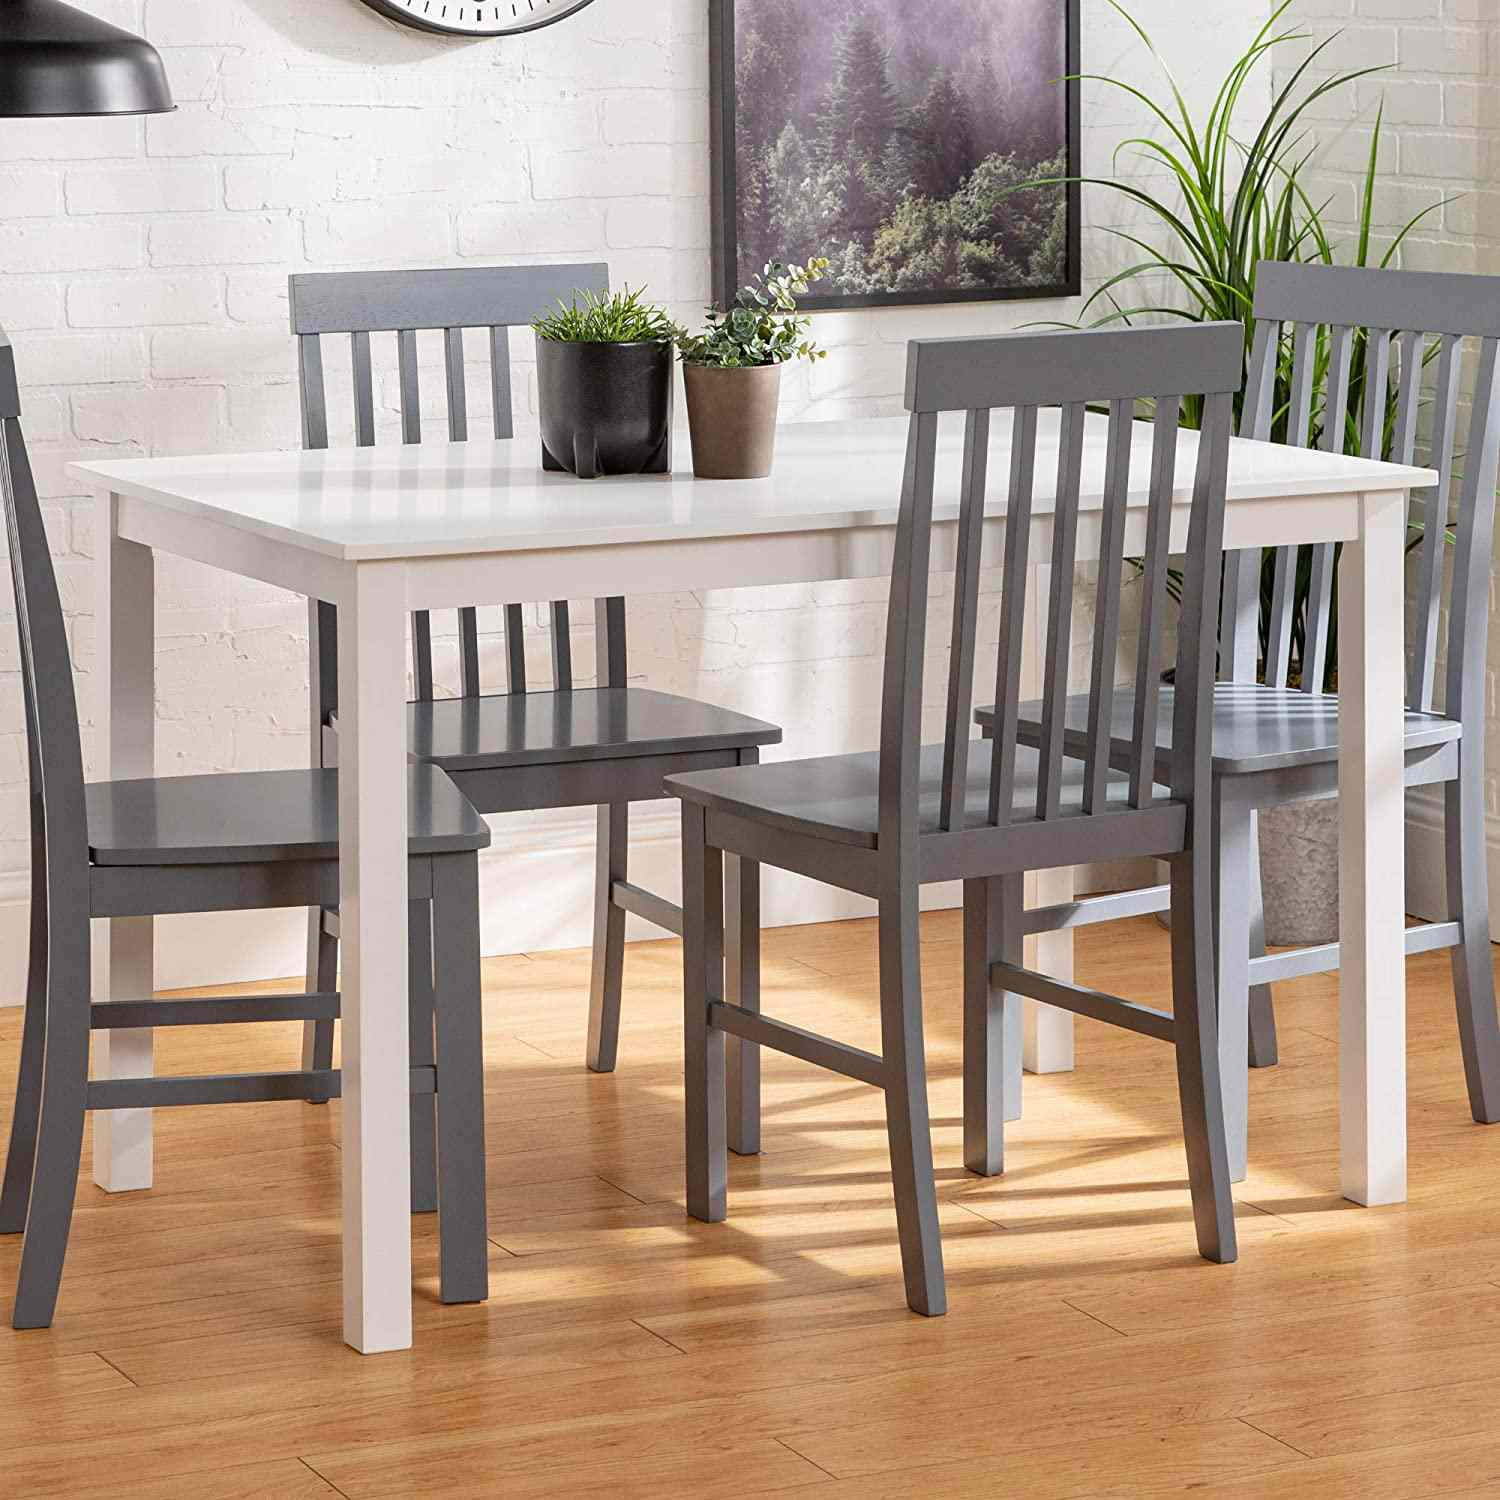 Walker Edison 4 Person Modern Farmhouse Wood Small Dining Table